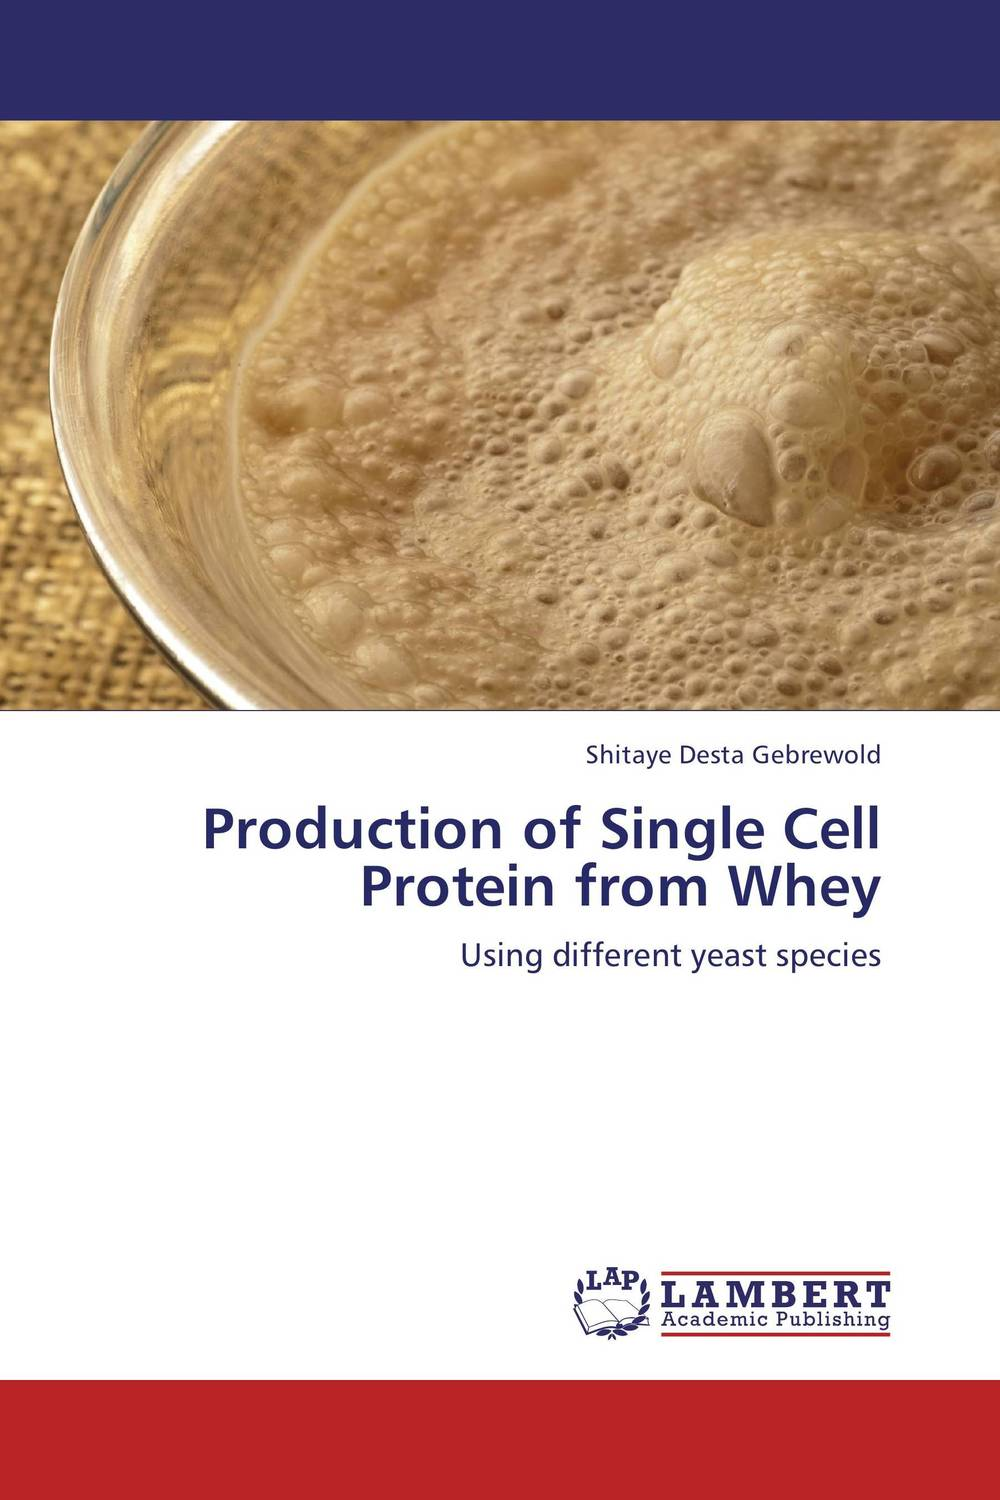 Production of Single Cell Protein from Whey lipid production by oleaginous yeasts